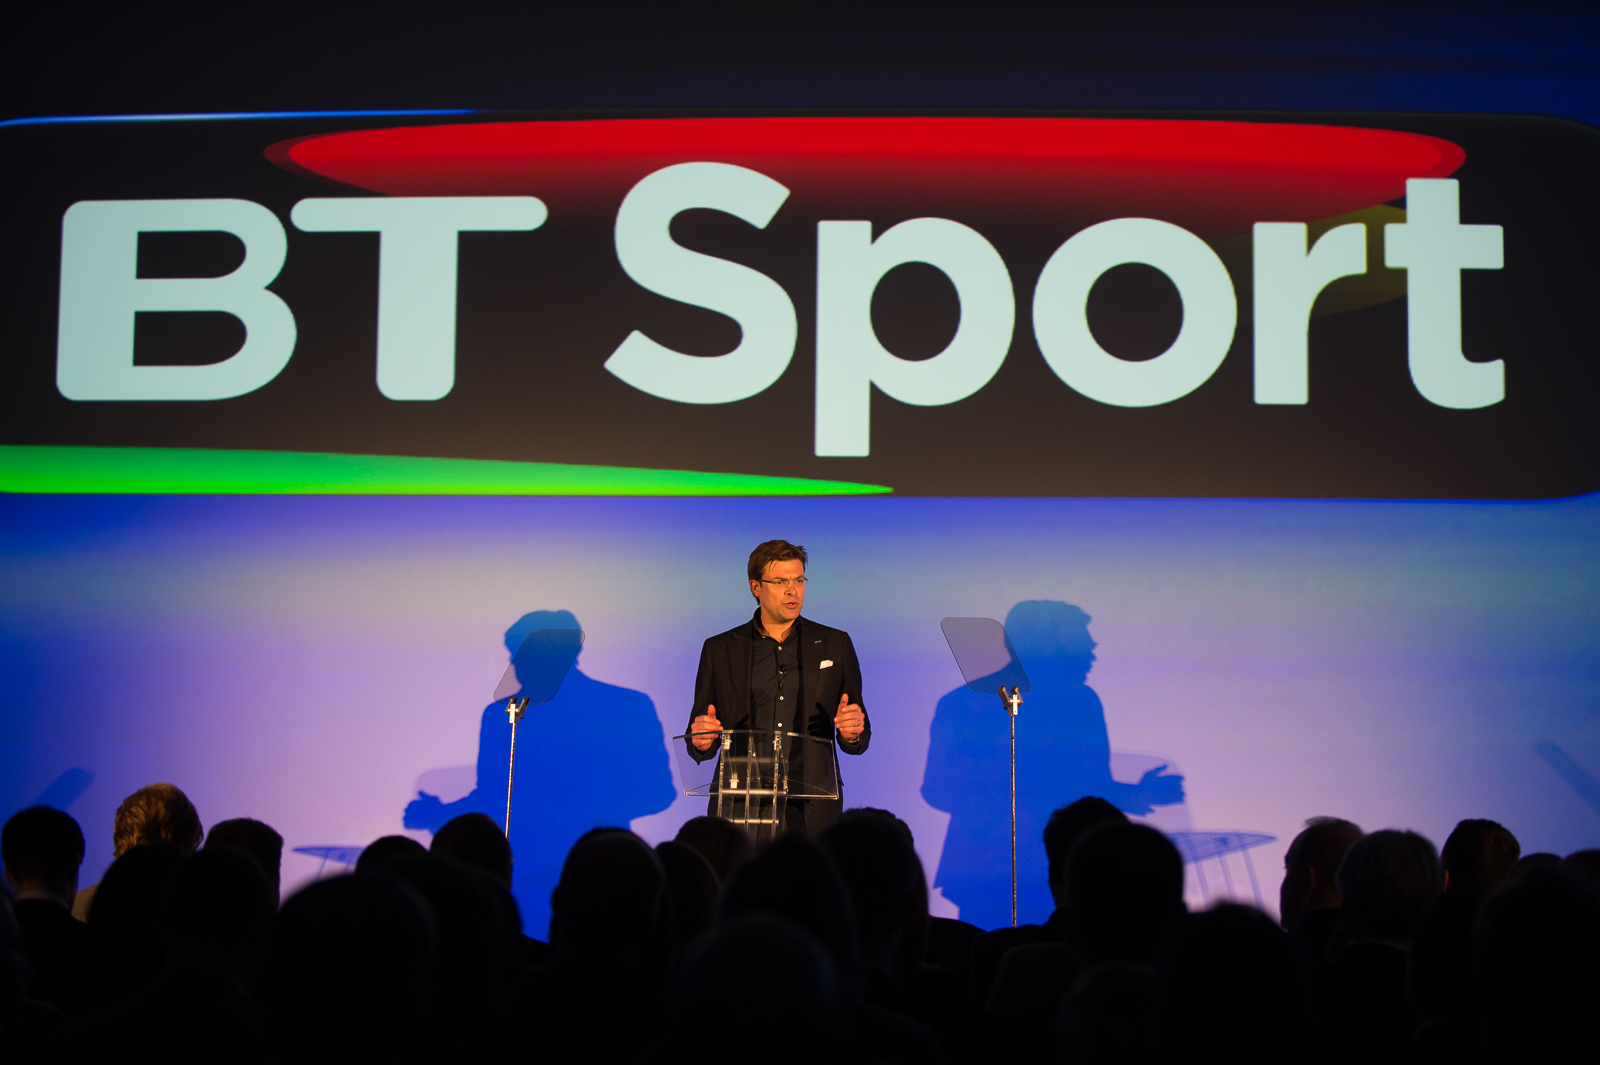 Bt to offer free premier league football